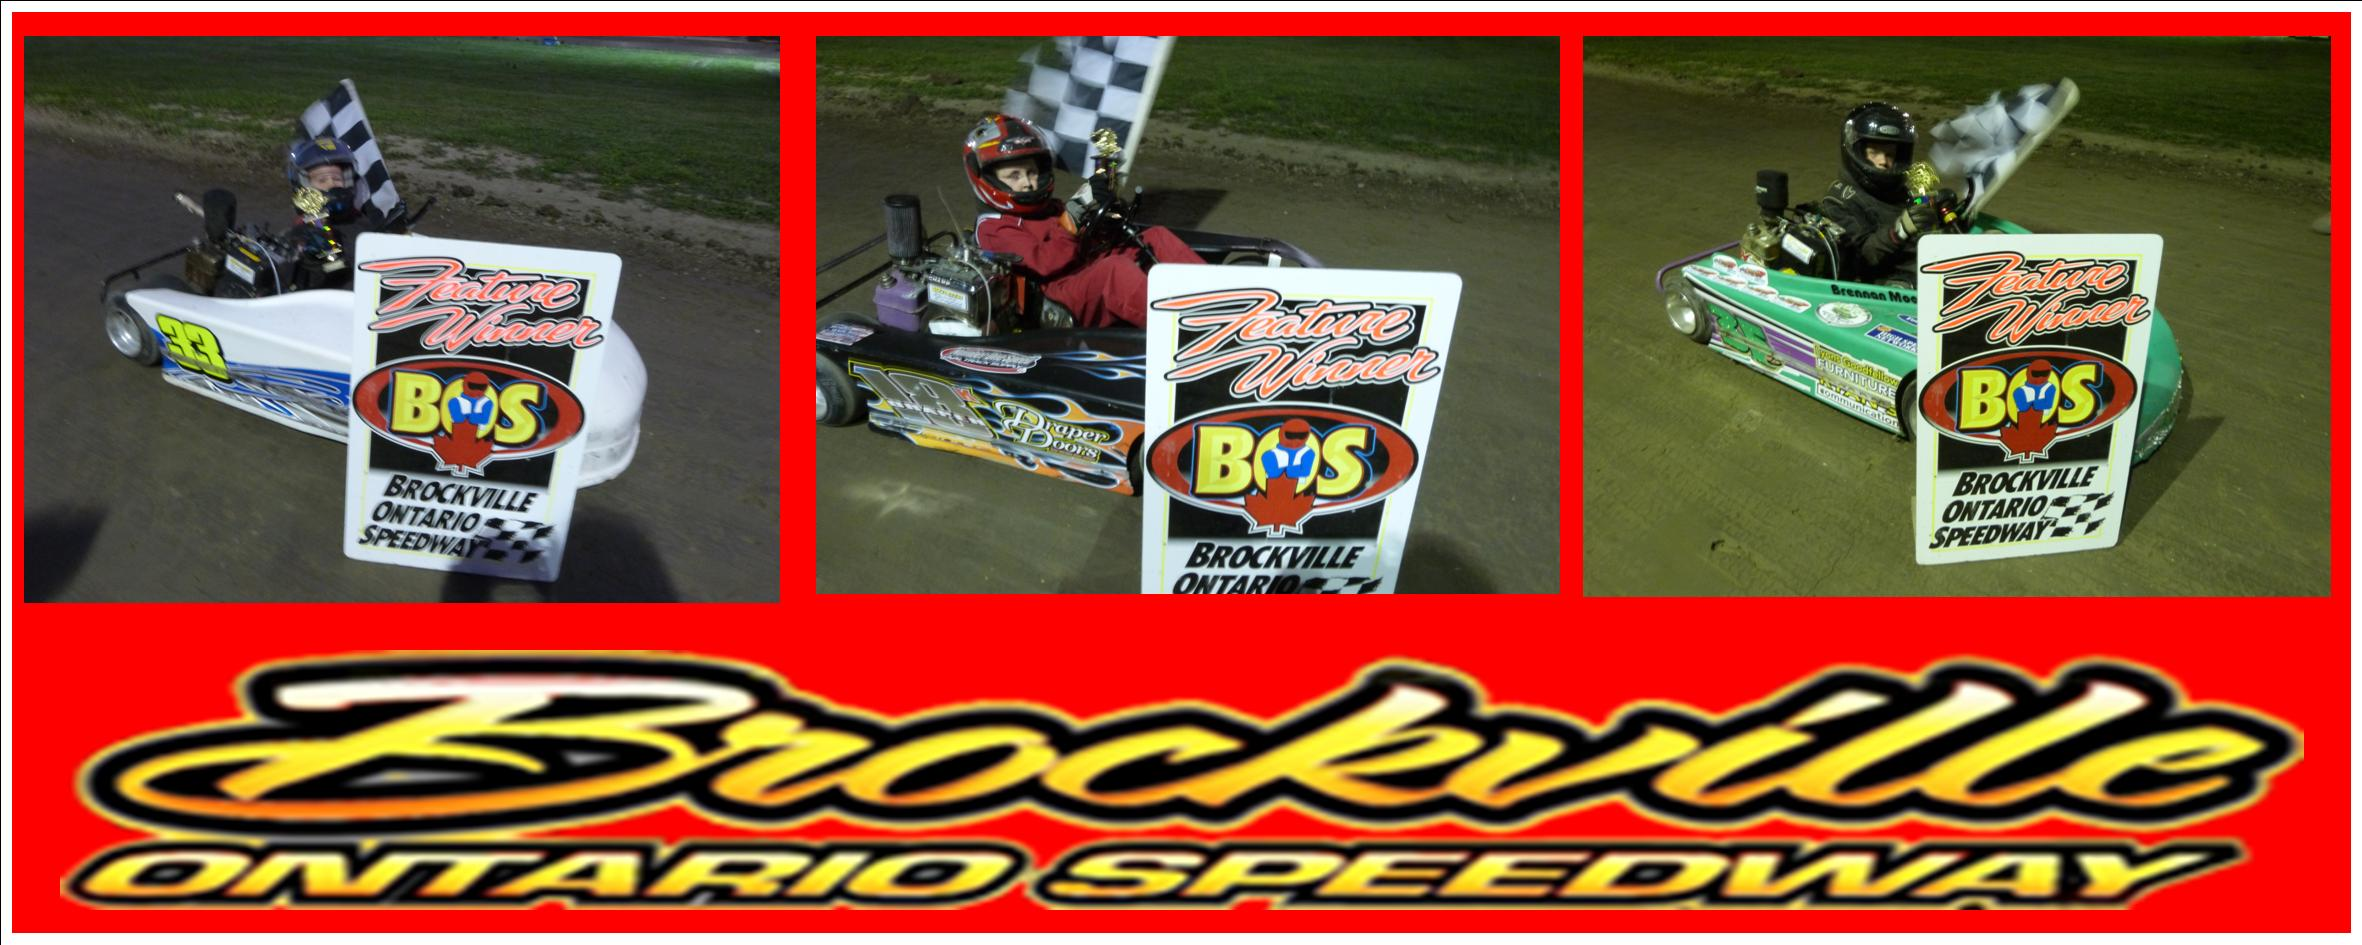 WINTERS DYLAN MOORE DRAPER BRENNAN MOORE CRAWFORD RENAUD REVELLE AND SMITH SHARE BROCKVILLE SPEEDWAY WINNERS CIRCLE